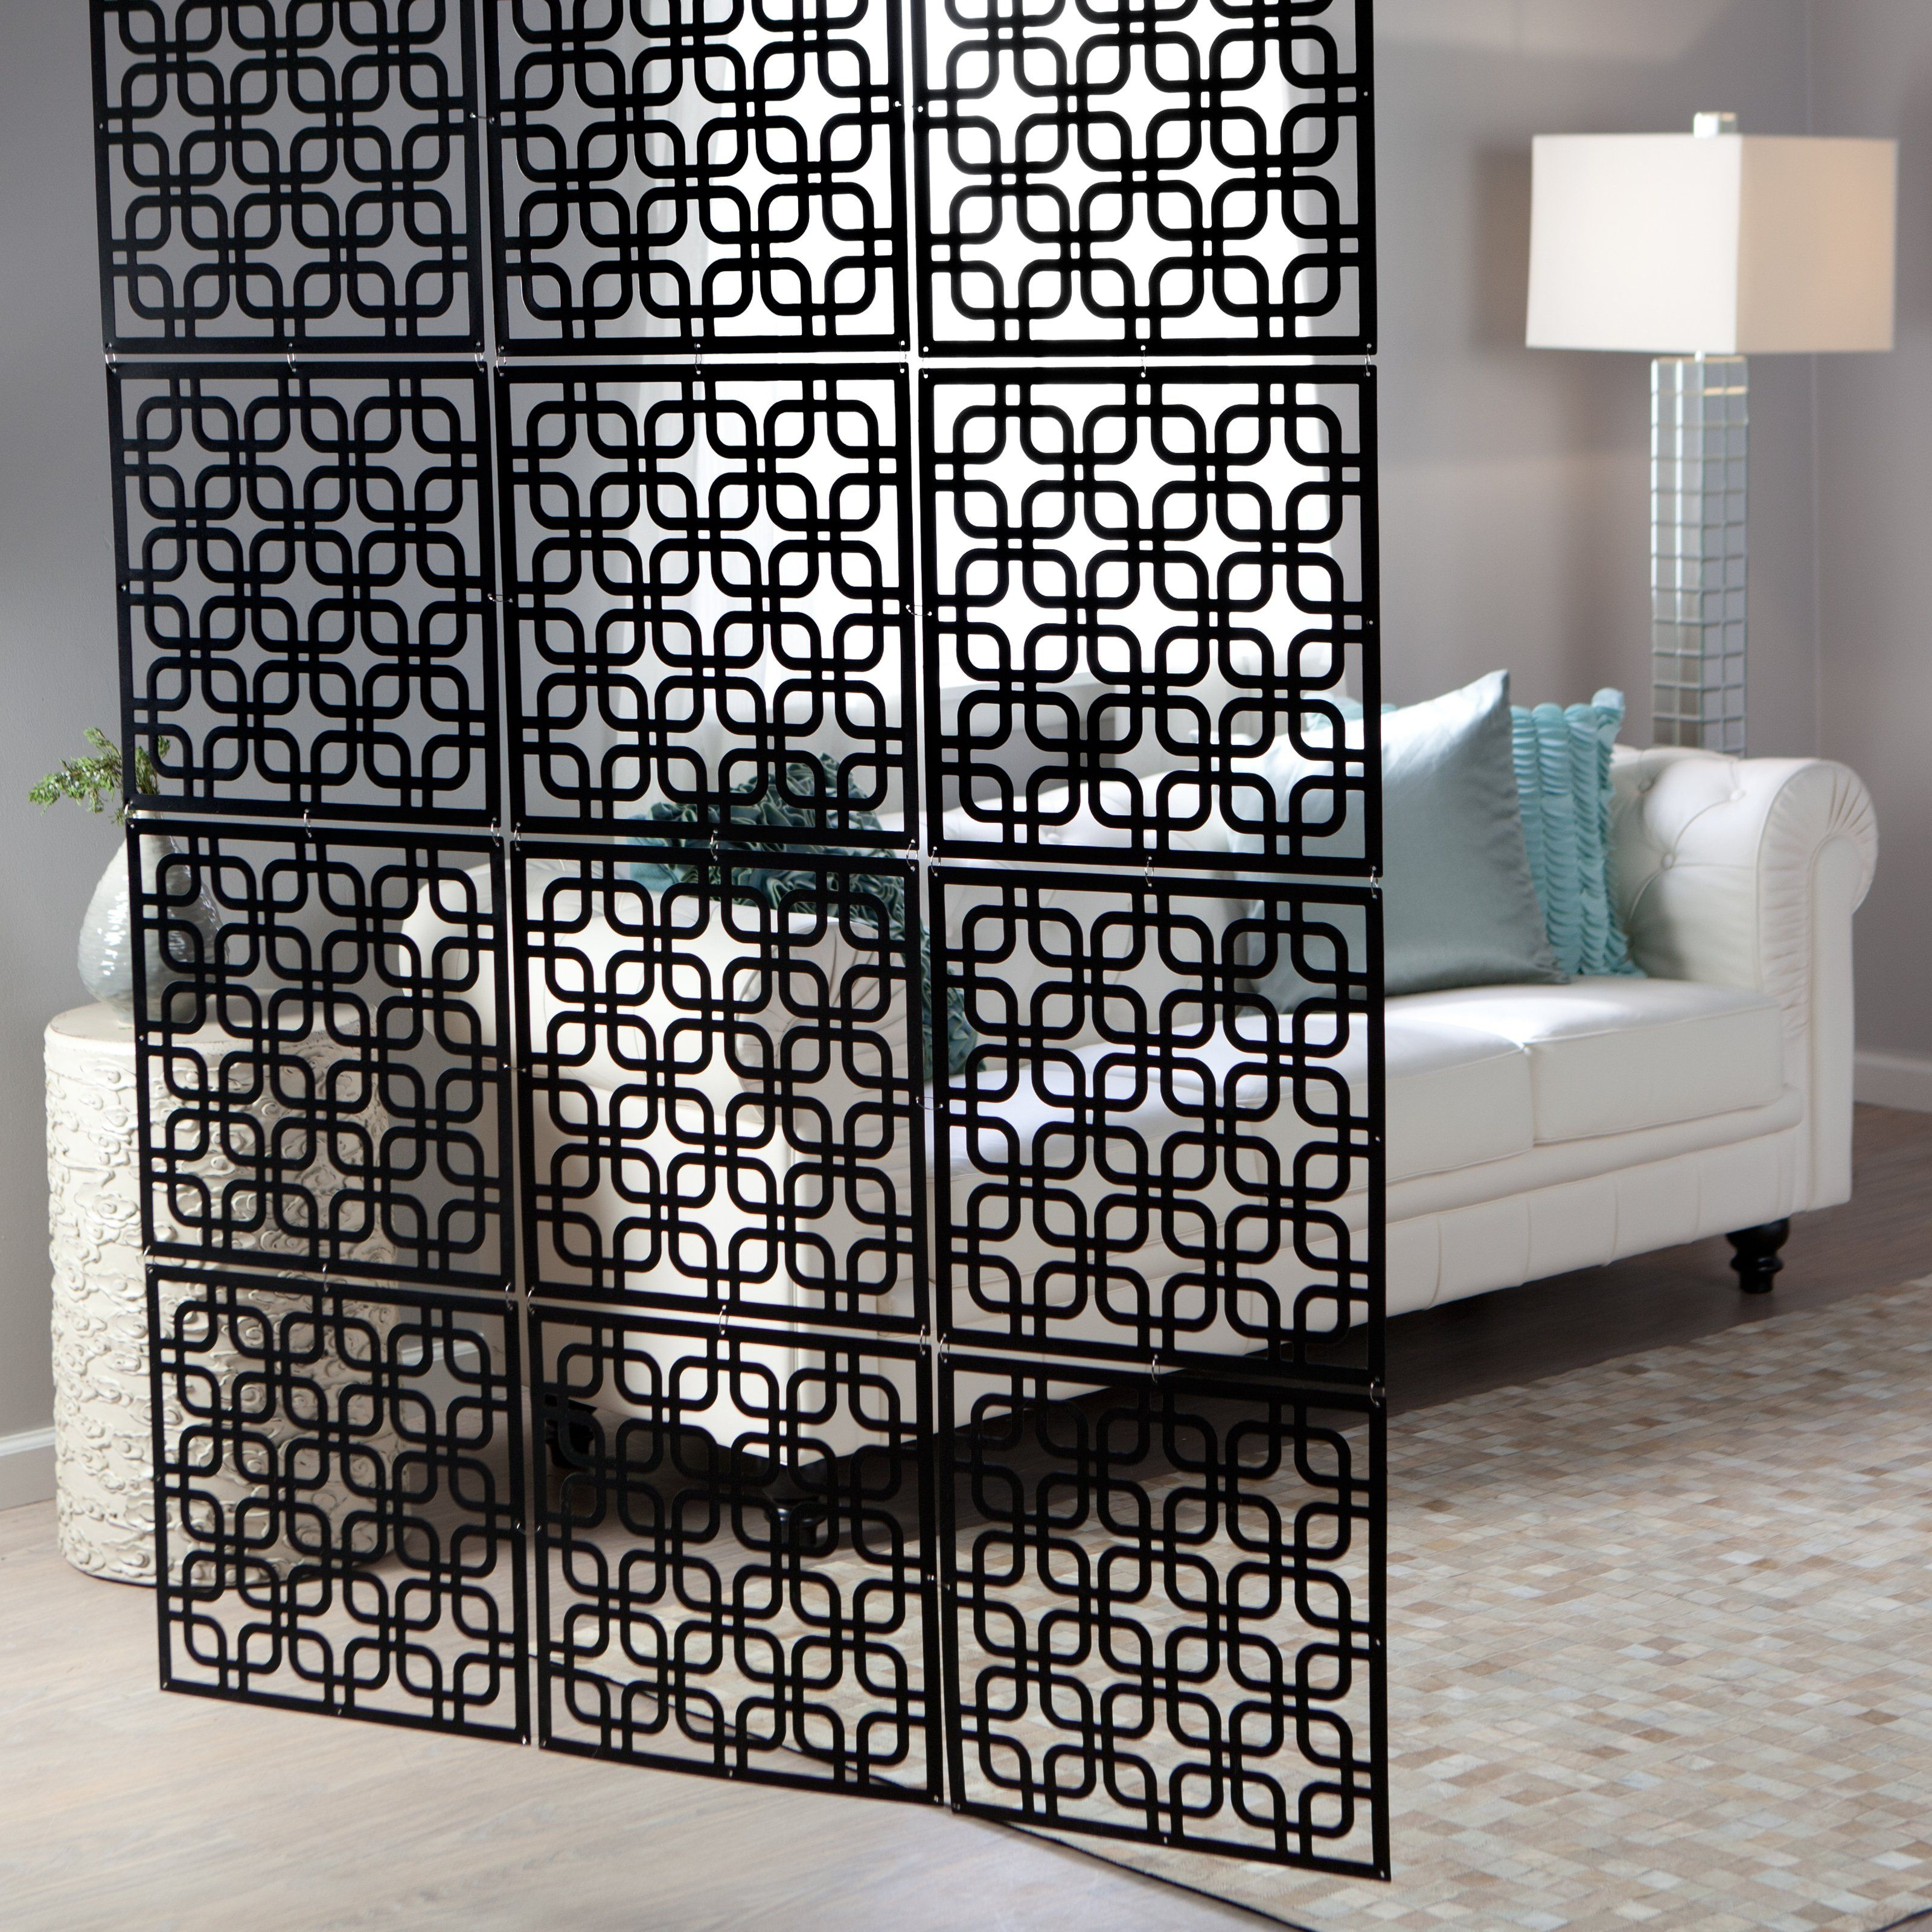 decorative partitions room divider zampco - decorative partitions room divider  images about room partition onpinterest hanging room dividers room dividers